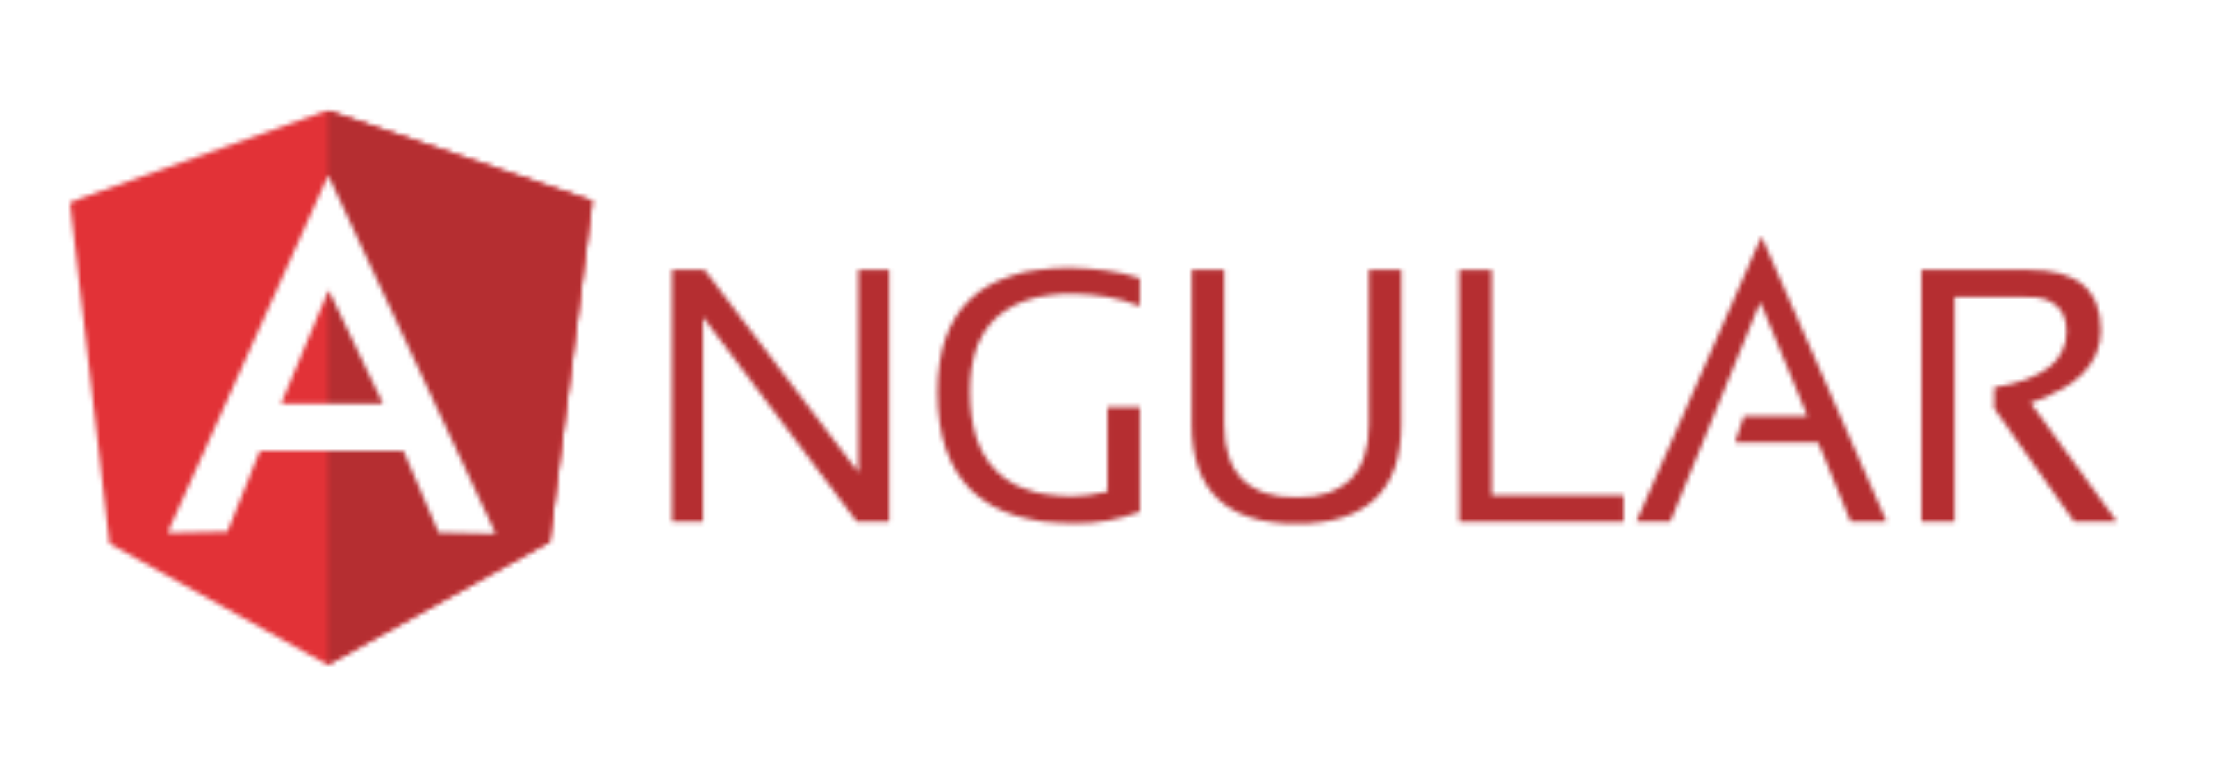 The logo of Angular is shown.